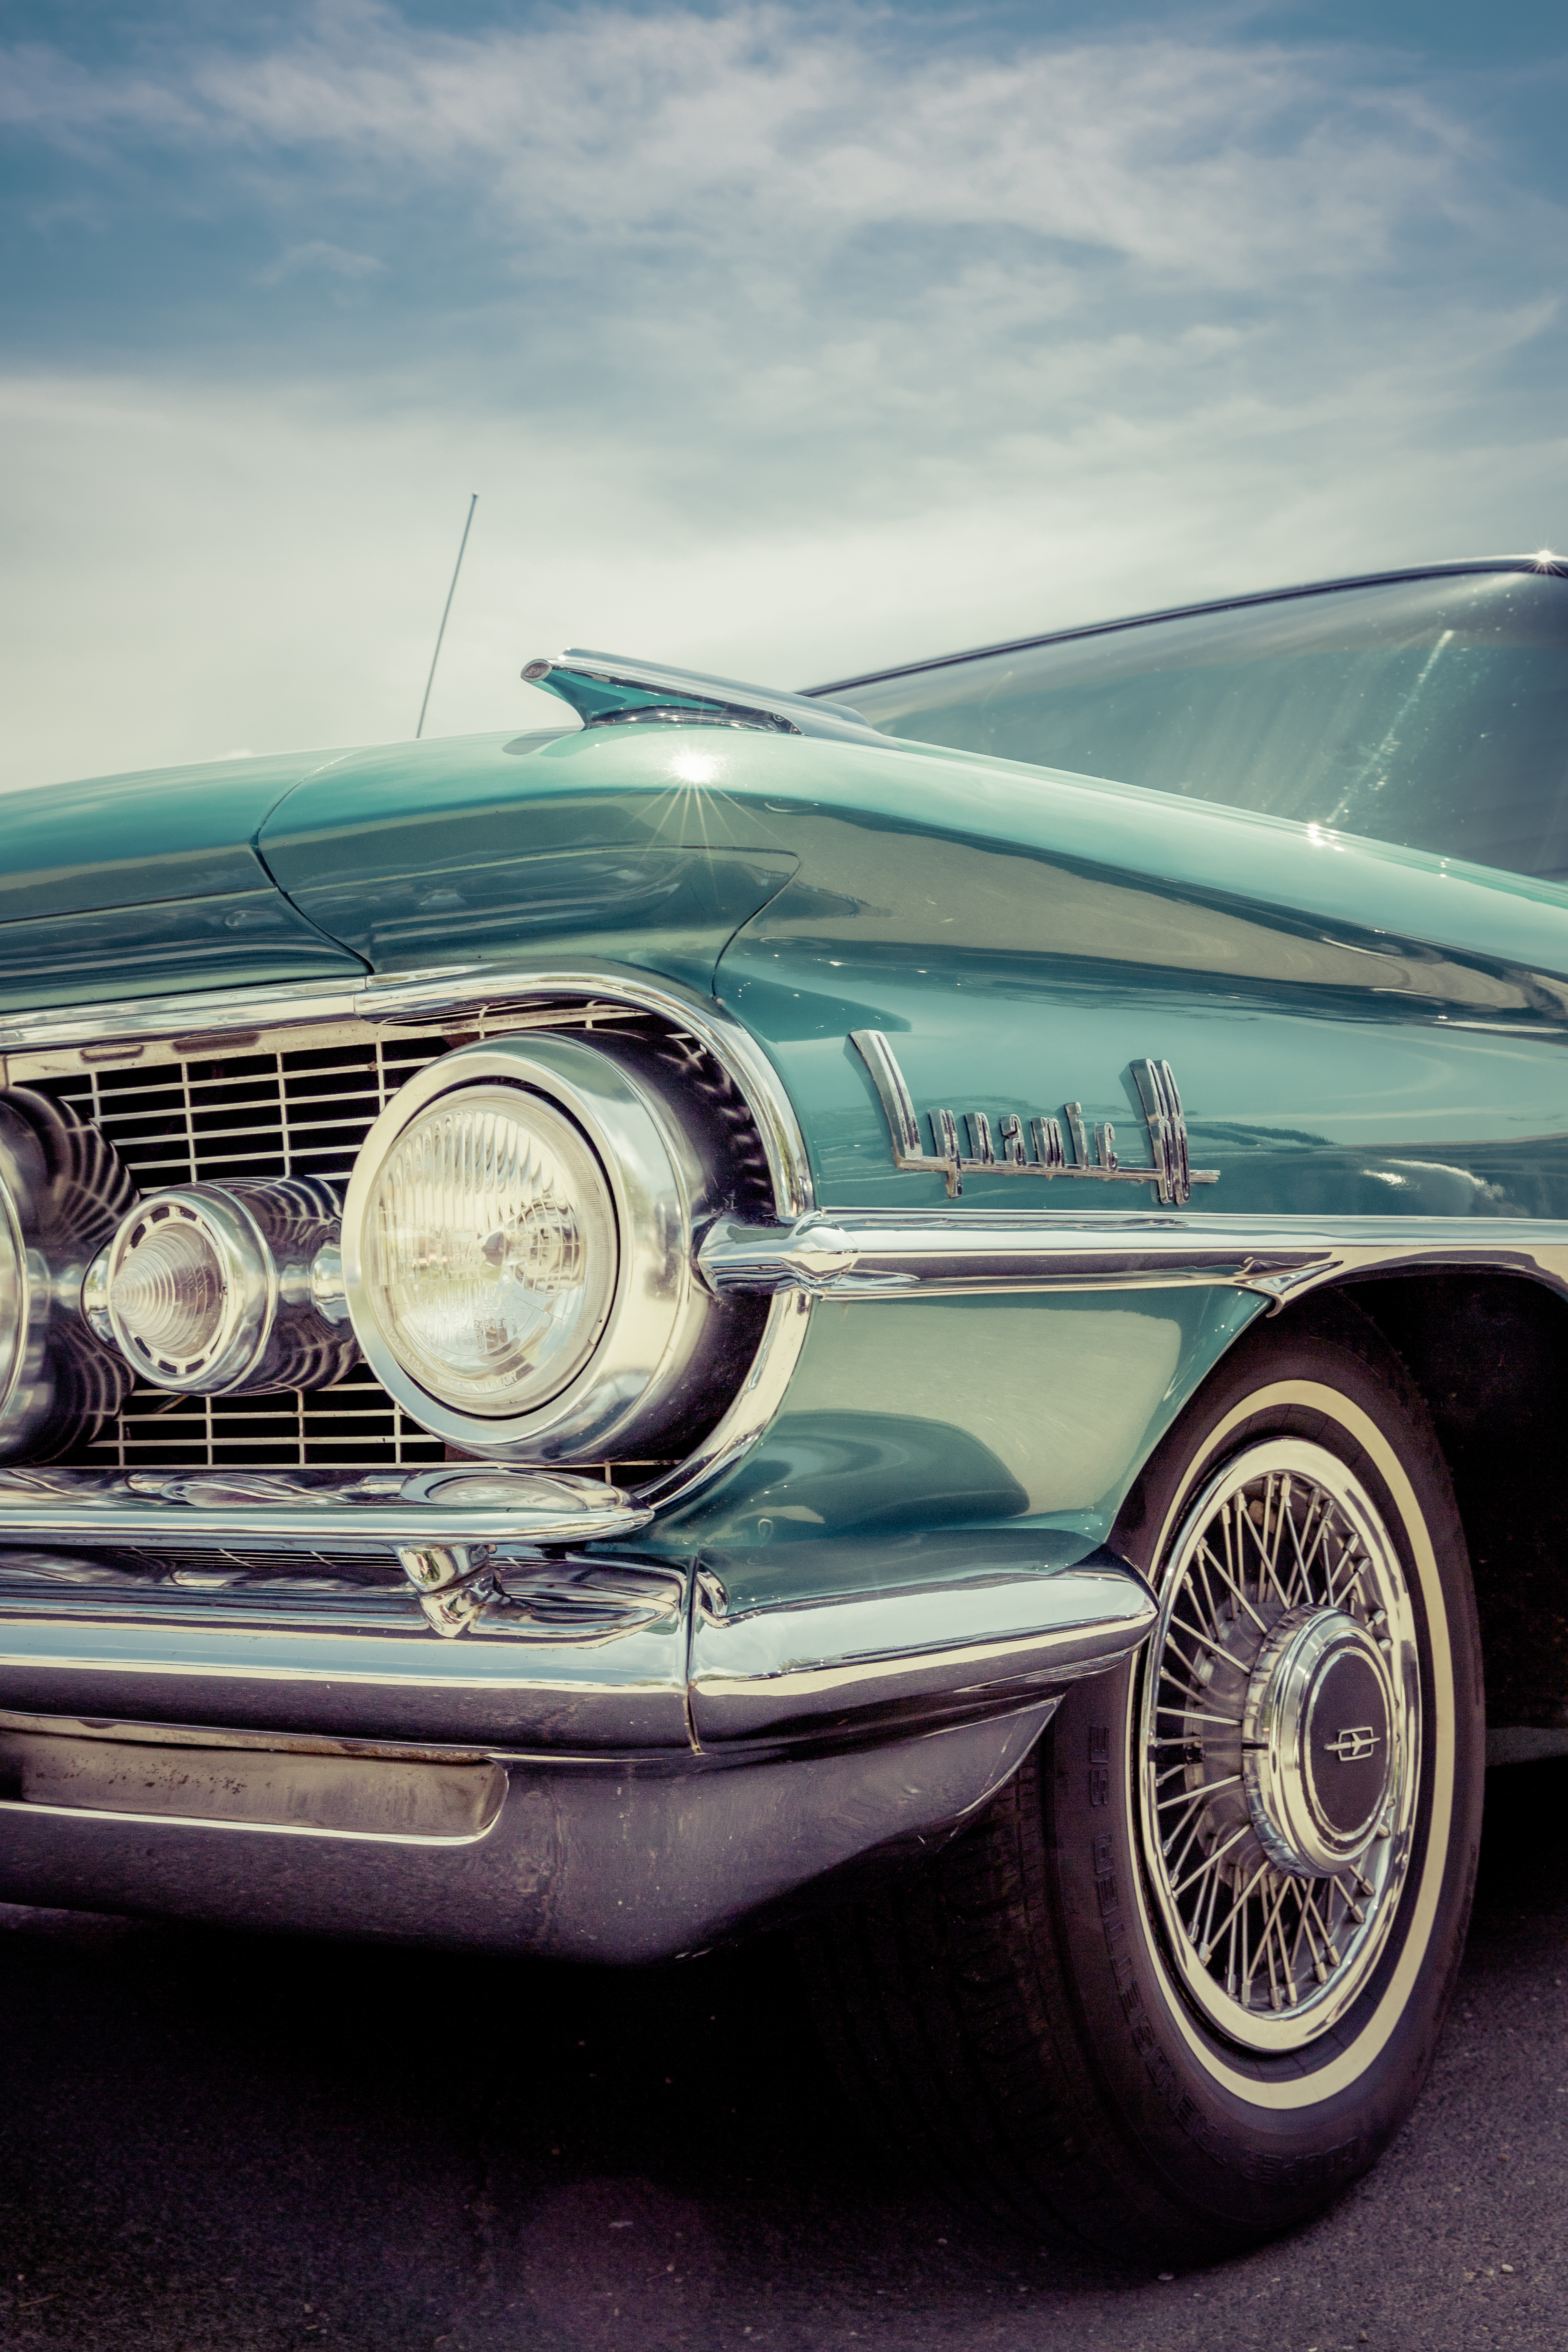 Green Classic Car · Free Stock Photo